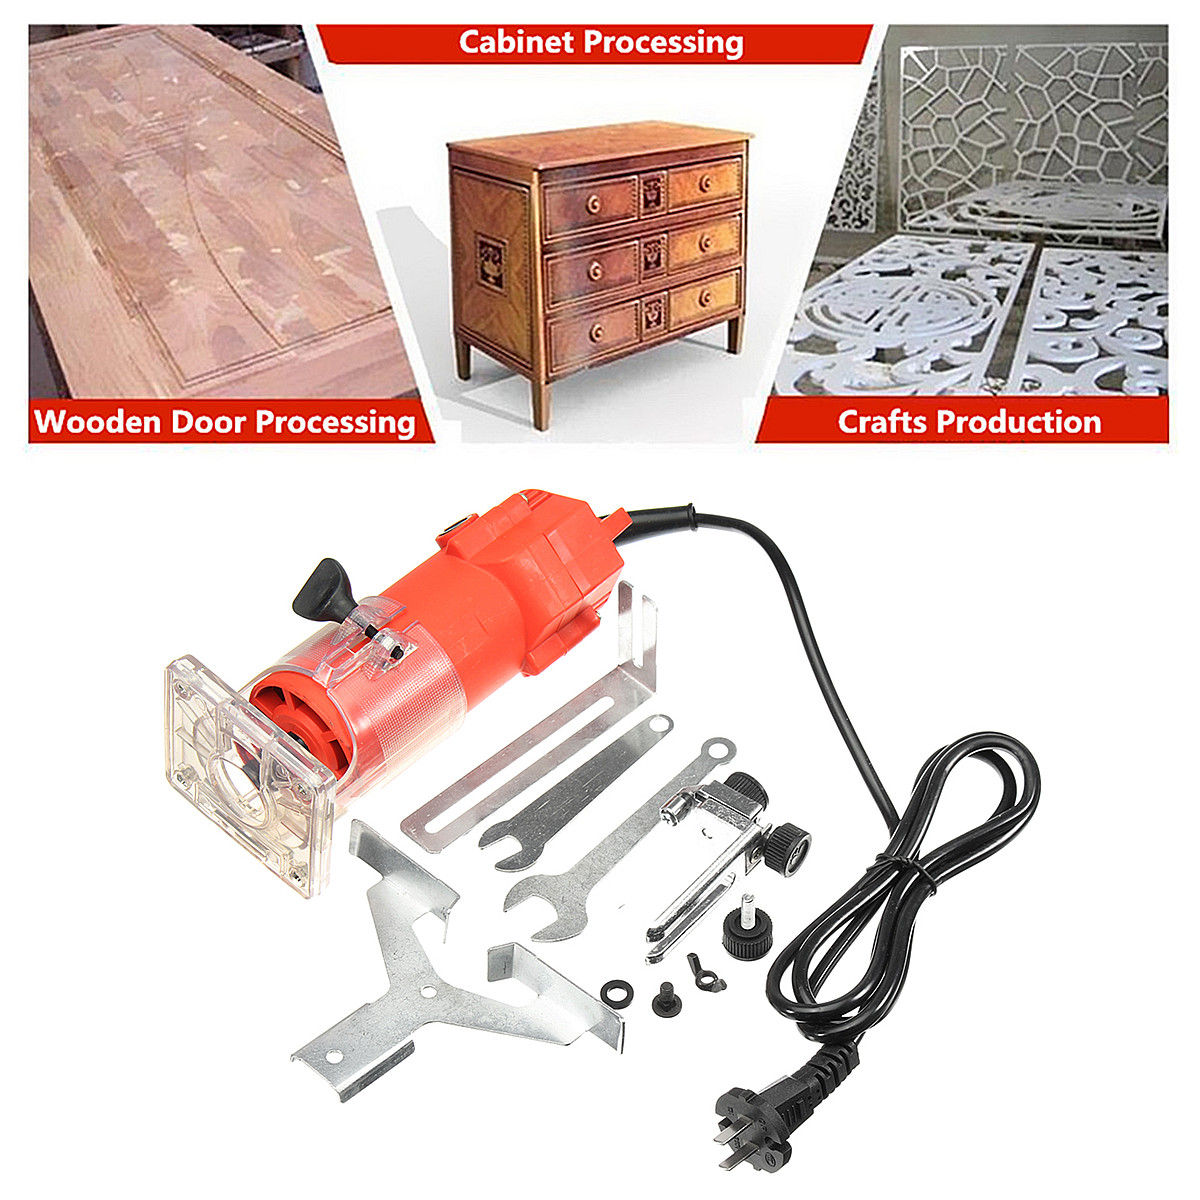 220V 450w 1/4 Inch Corded Electric Hand Trimmer Wood Laminator Router Joiners Tools